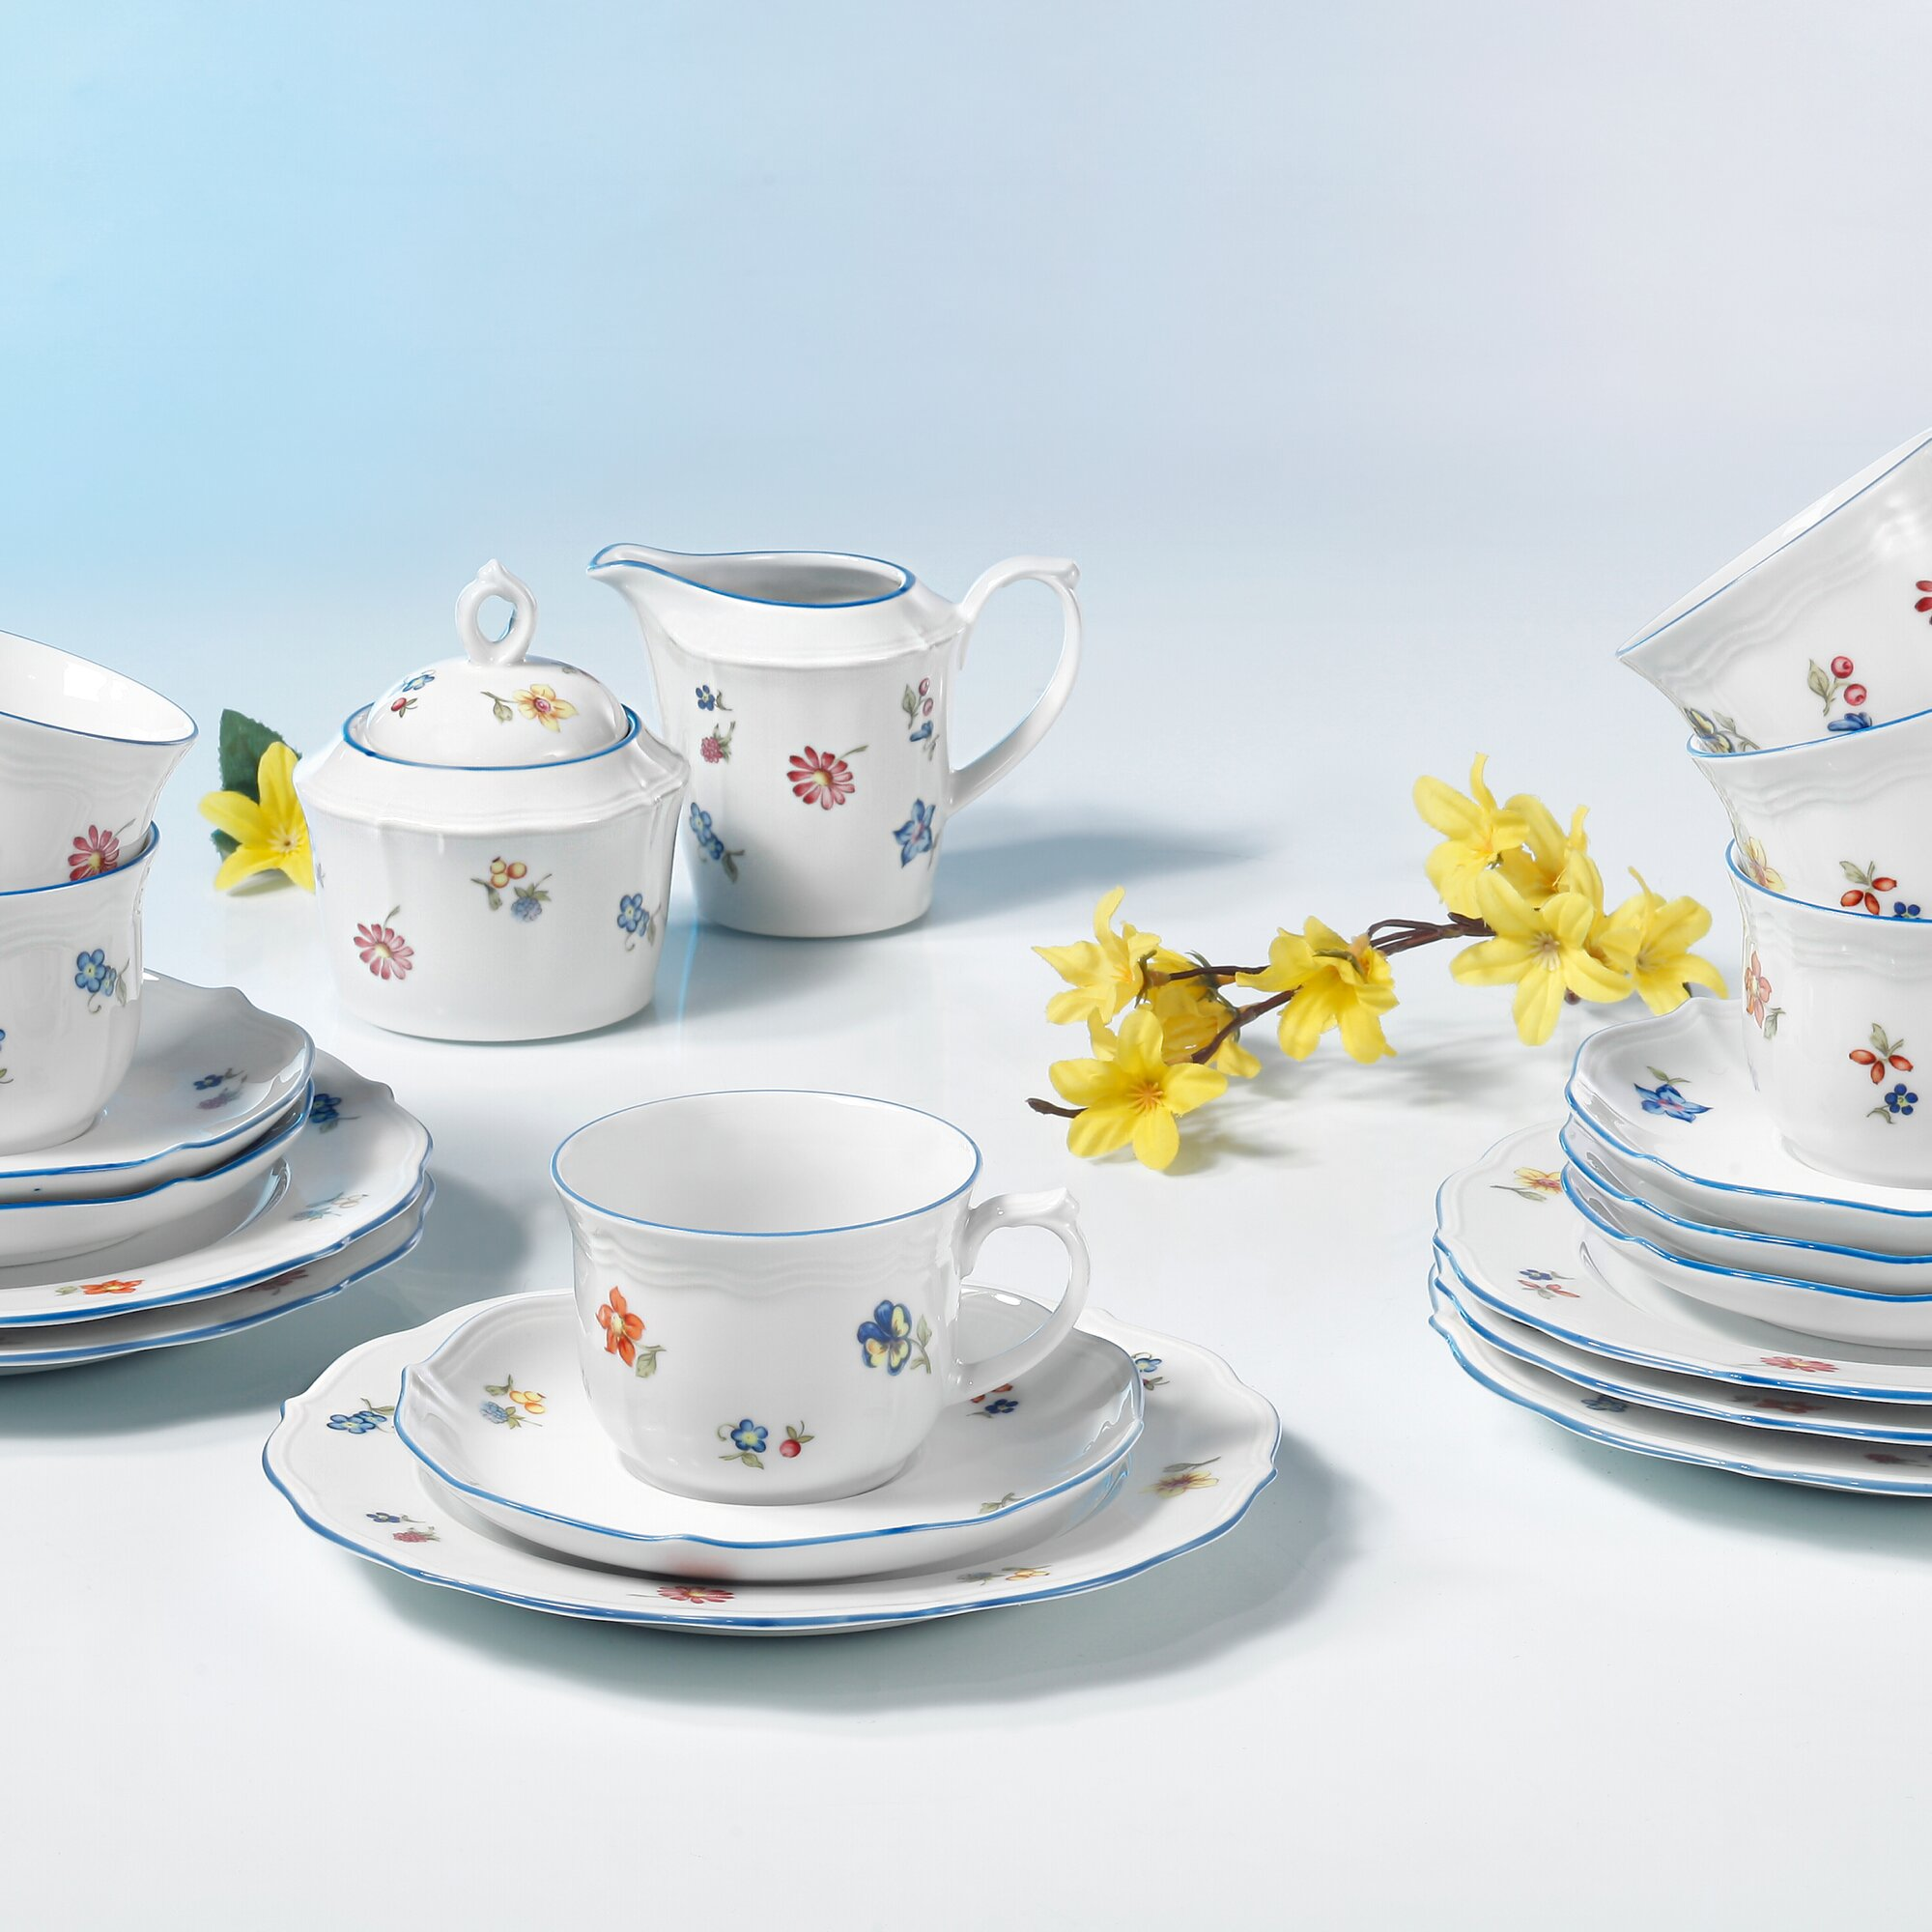 Seltmann Weiden Service : seltmann weiden sonate 20 piece porcelain coffee service set reviews wayfair uk ~ Whattoseeinmadrid.com Haus und Dekorationen